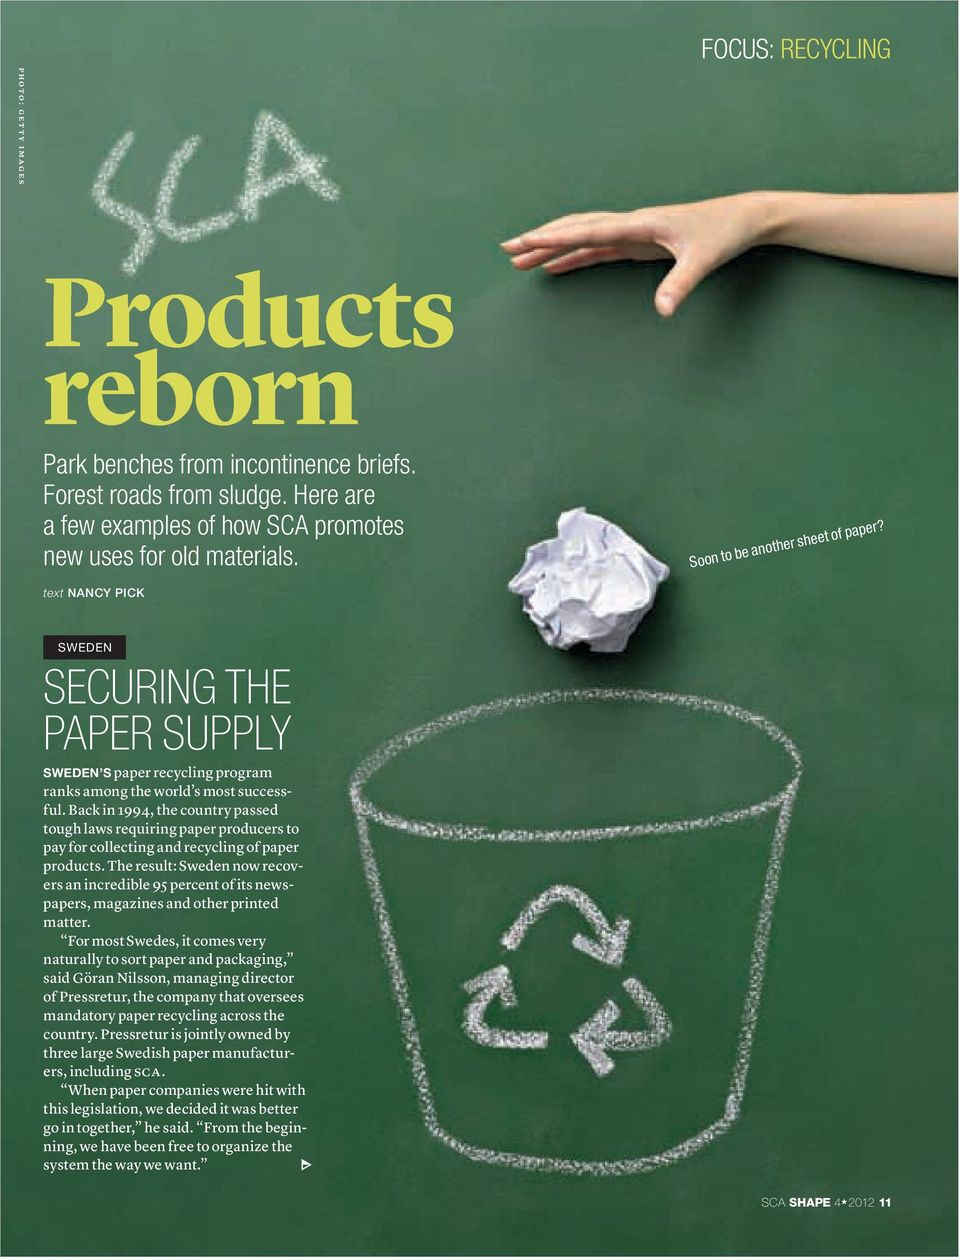 Back in 1994, the country passed tough laws requiring paper producers to pay for collecting and recycling of paper products.